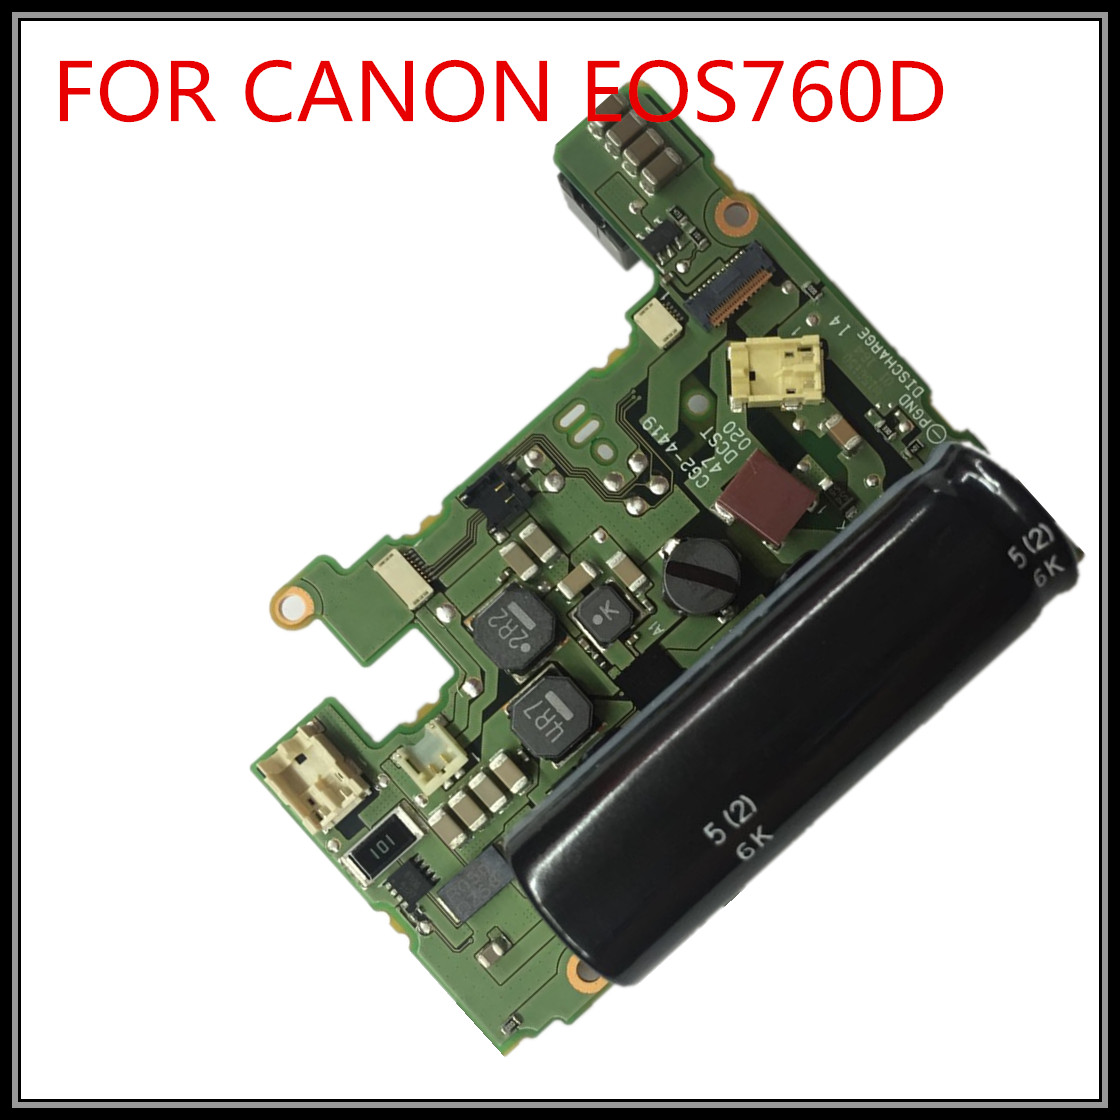 DC power charge board / PCB repair parts for Canon EOS 750D 760D, - Kamera og bilde - Bilde 1